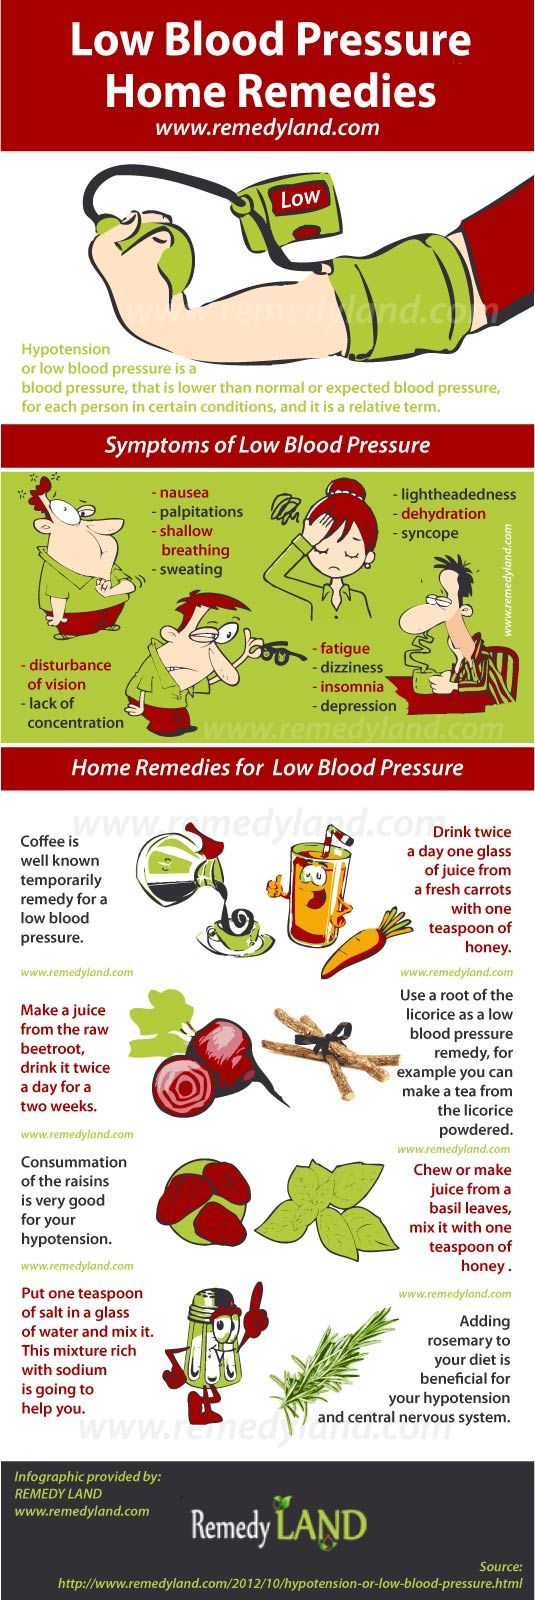 Home remedies to increase blood pressure in patients with low BP advise